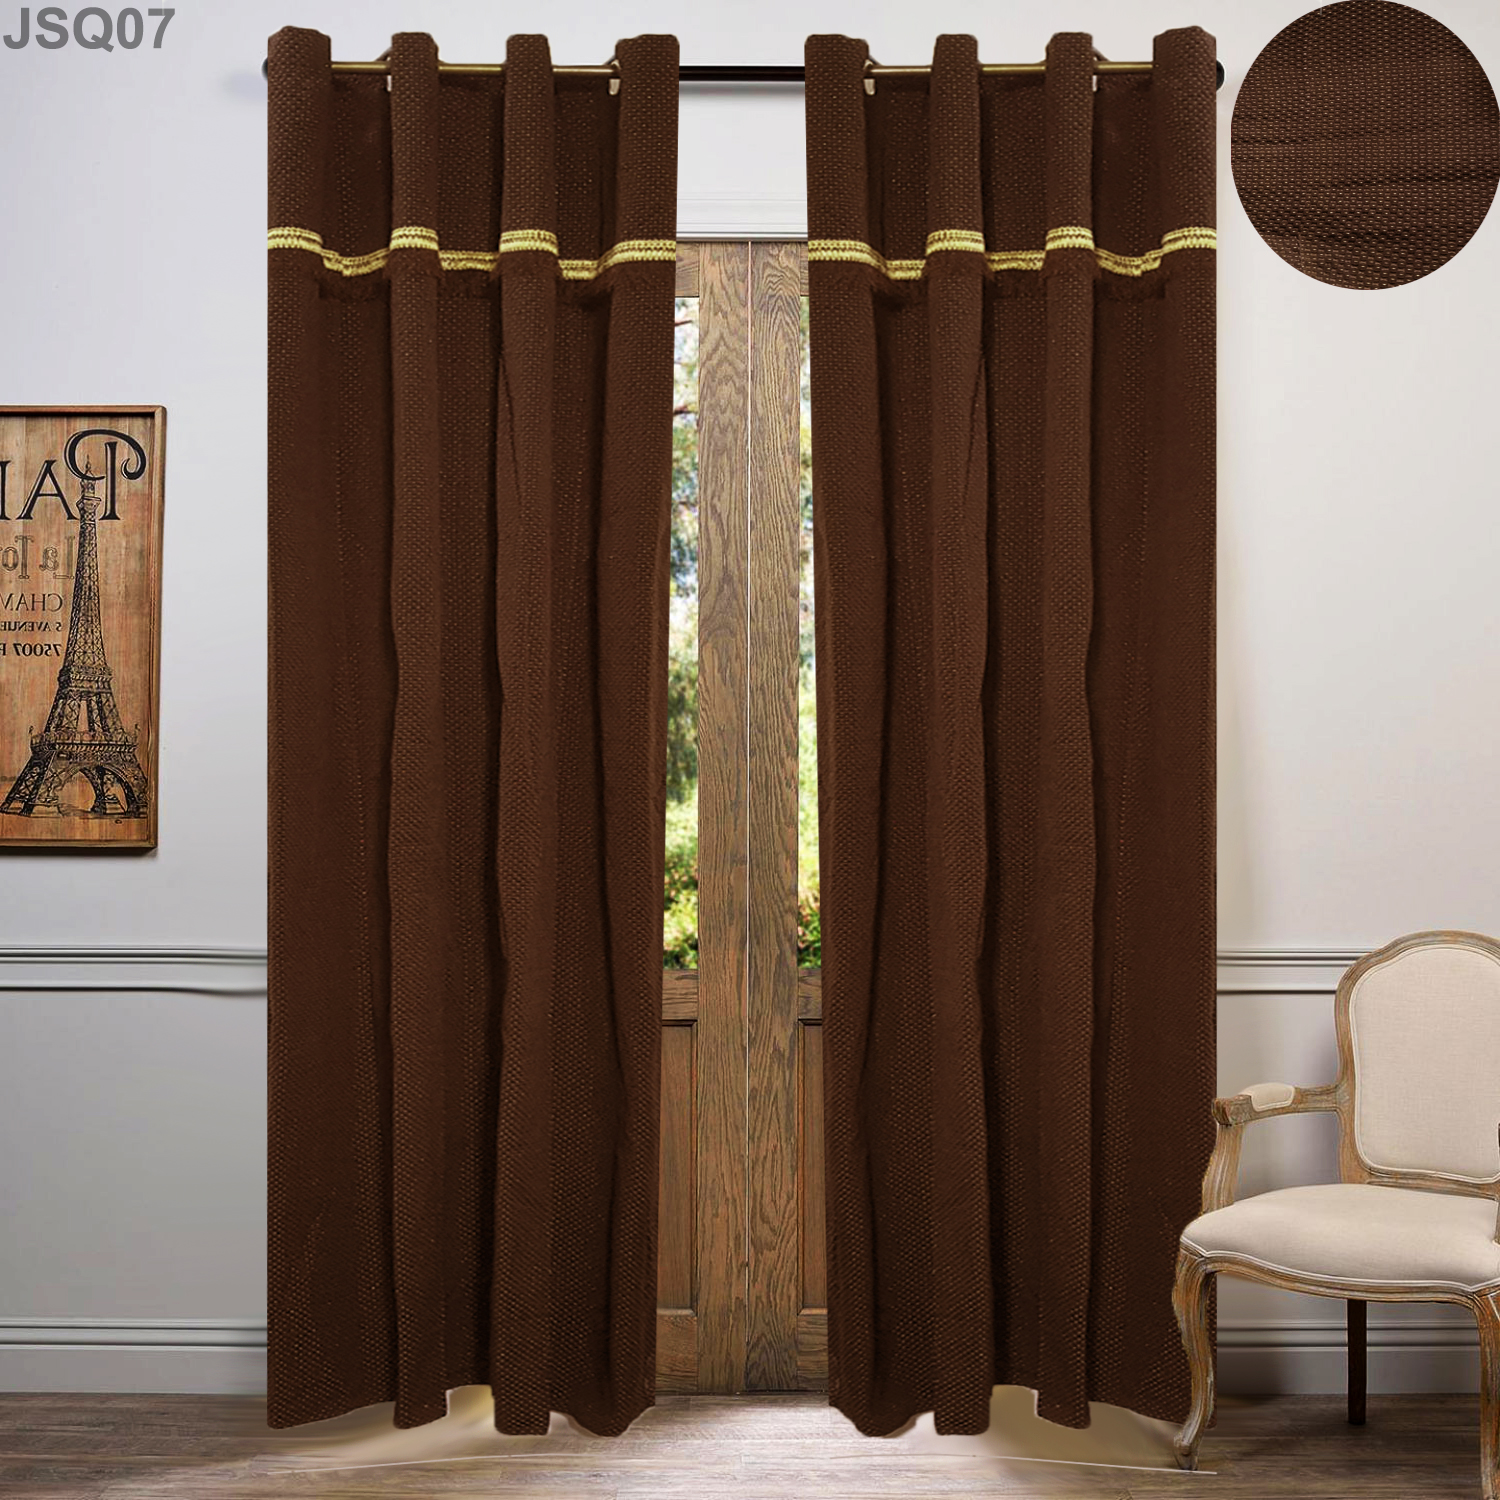 Desi Pakistani Style Curtains Making & Prices